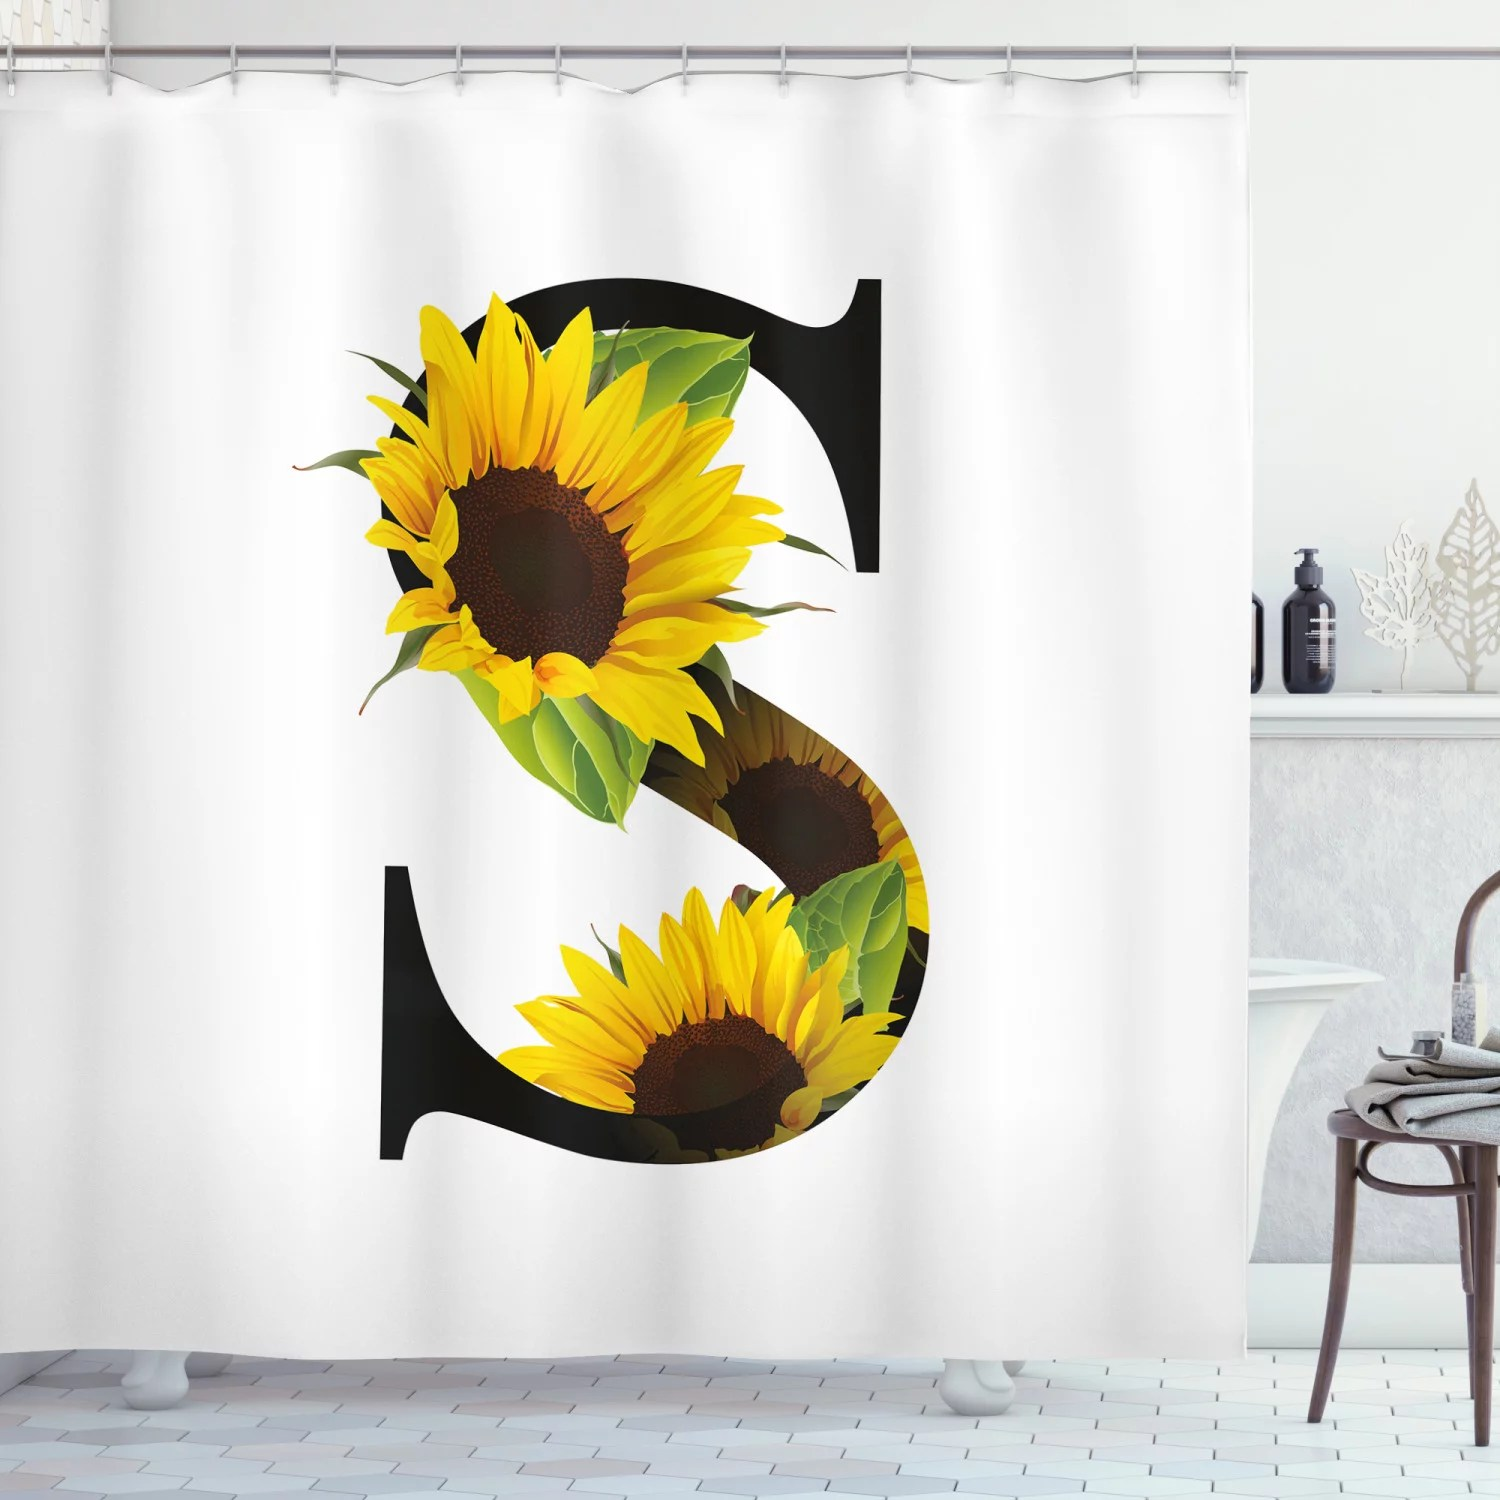 letter s shower curtain letter s with flora elements sunflowers on dark colored abstract art print fabric bathroom set with hooks 69w x 70l inches